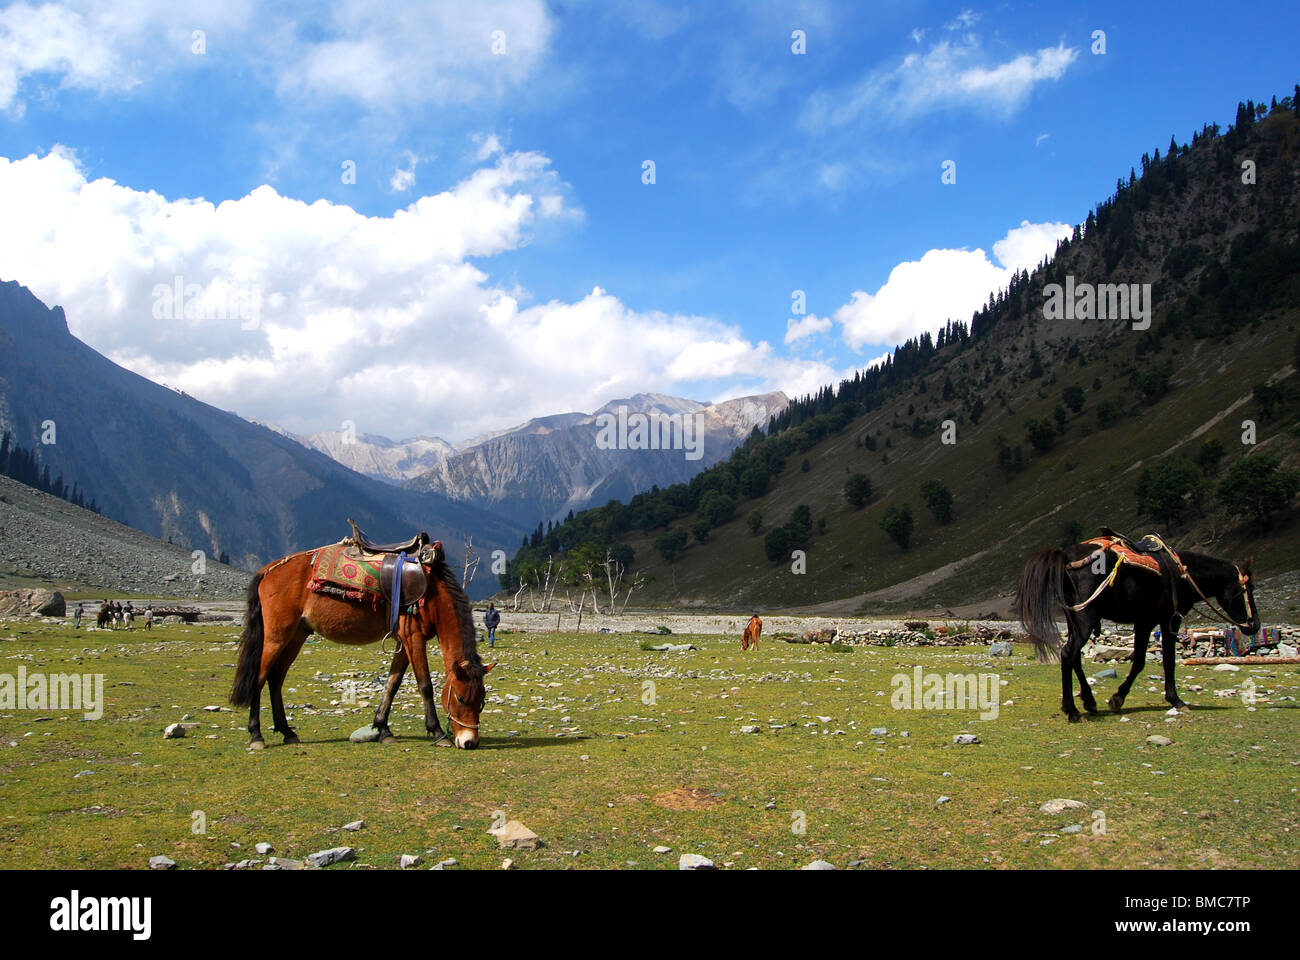 HIMALAYAN VALLY - Stock Image